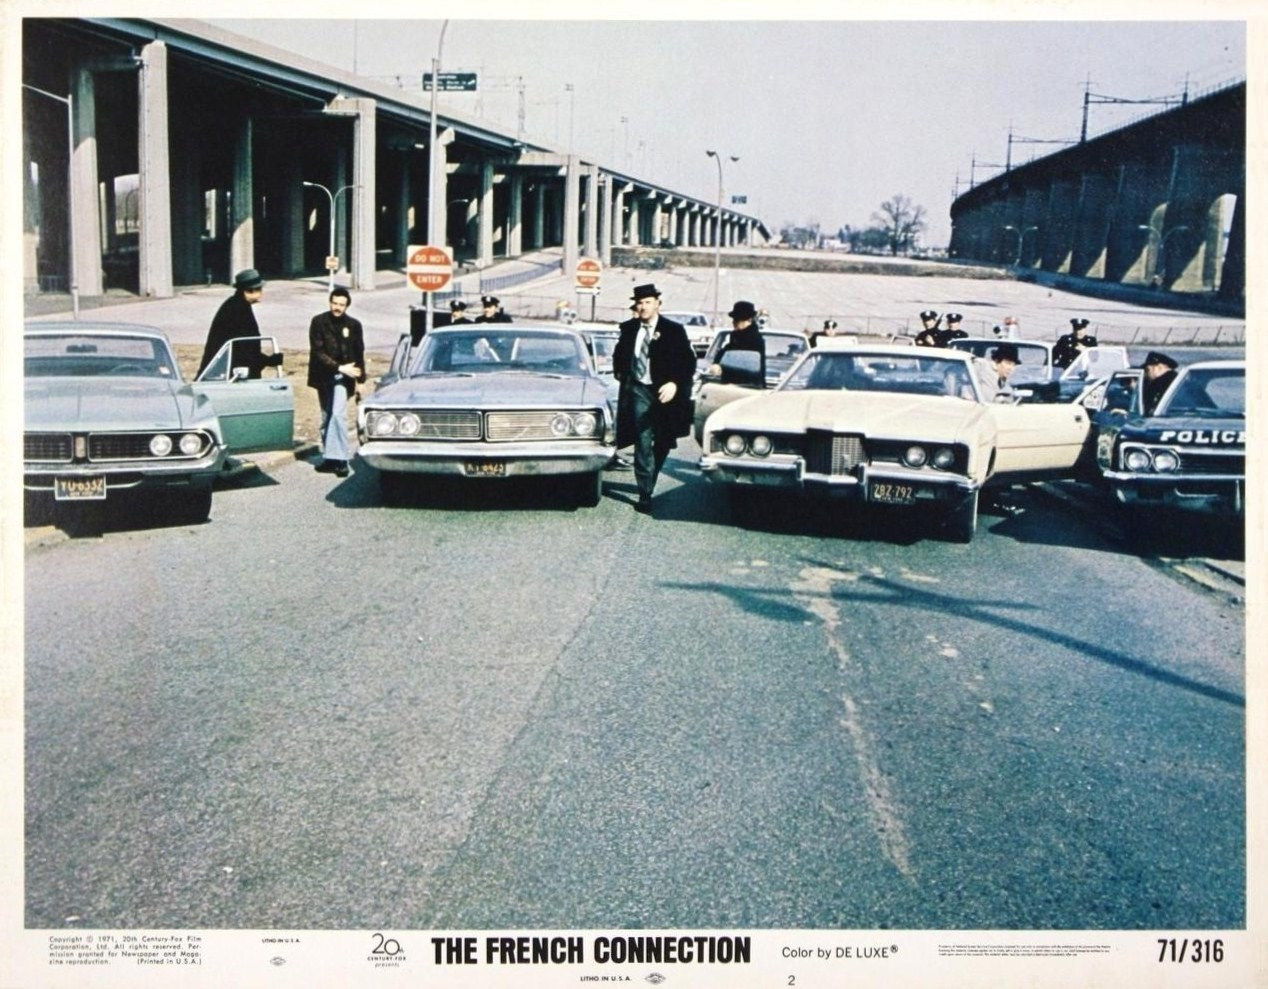 71TheFrenchConnection